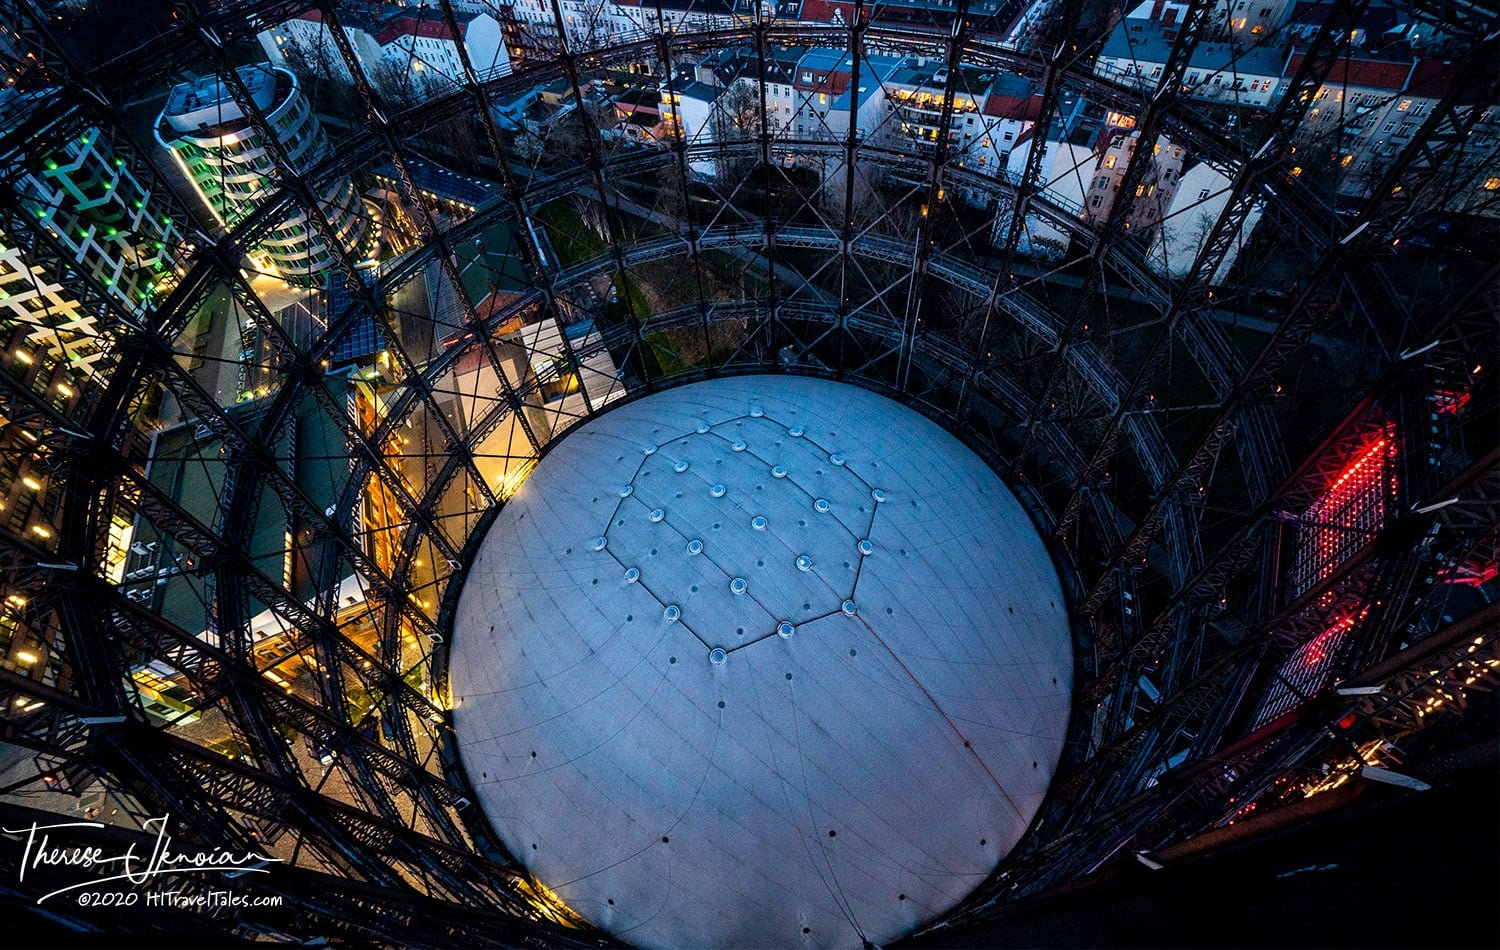 Looking down into the Berlin Gasometer at night